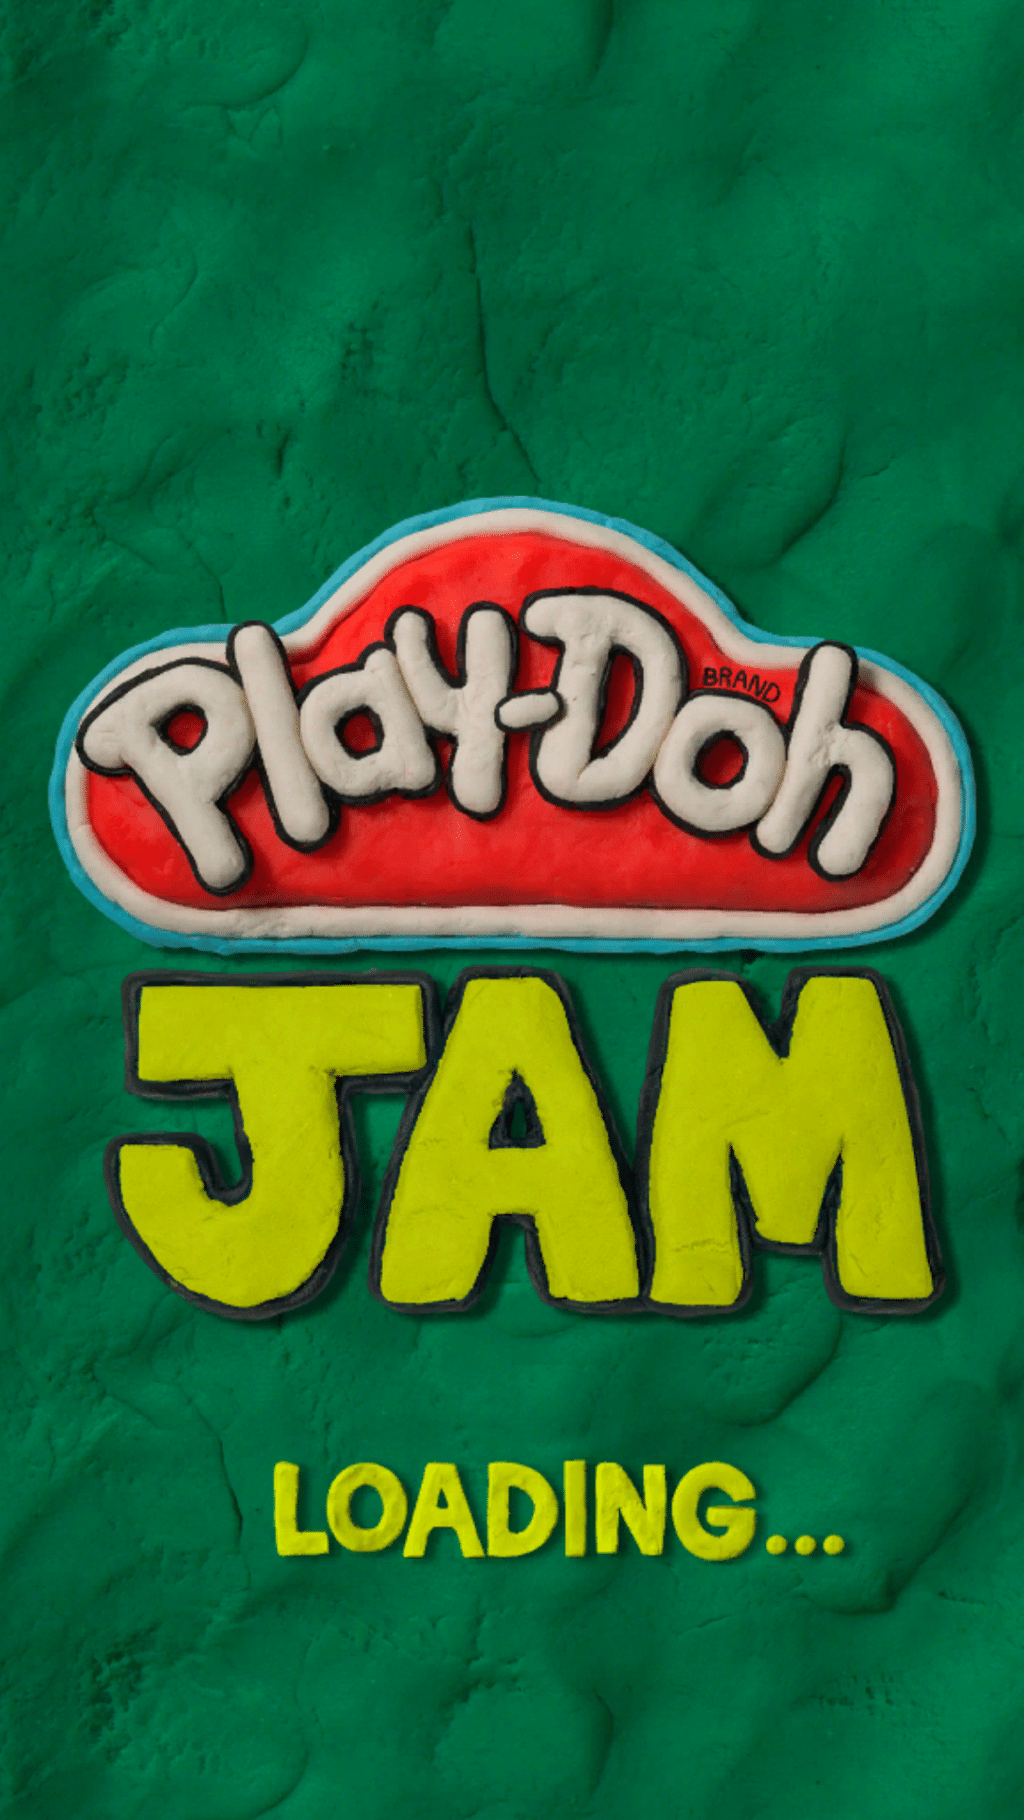 PLAY-DOH Jam Game App Review